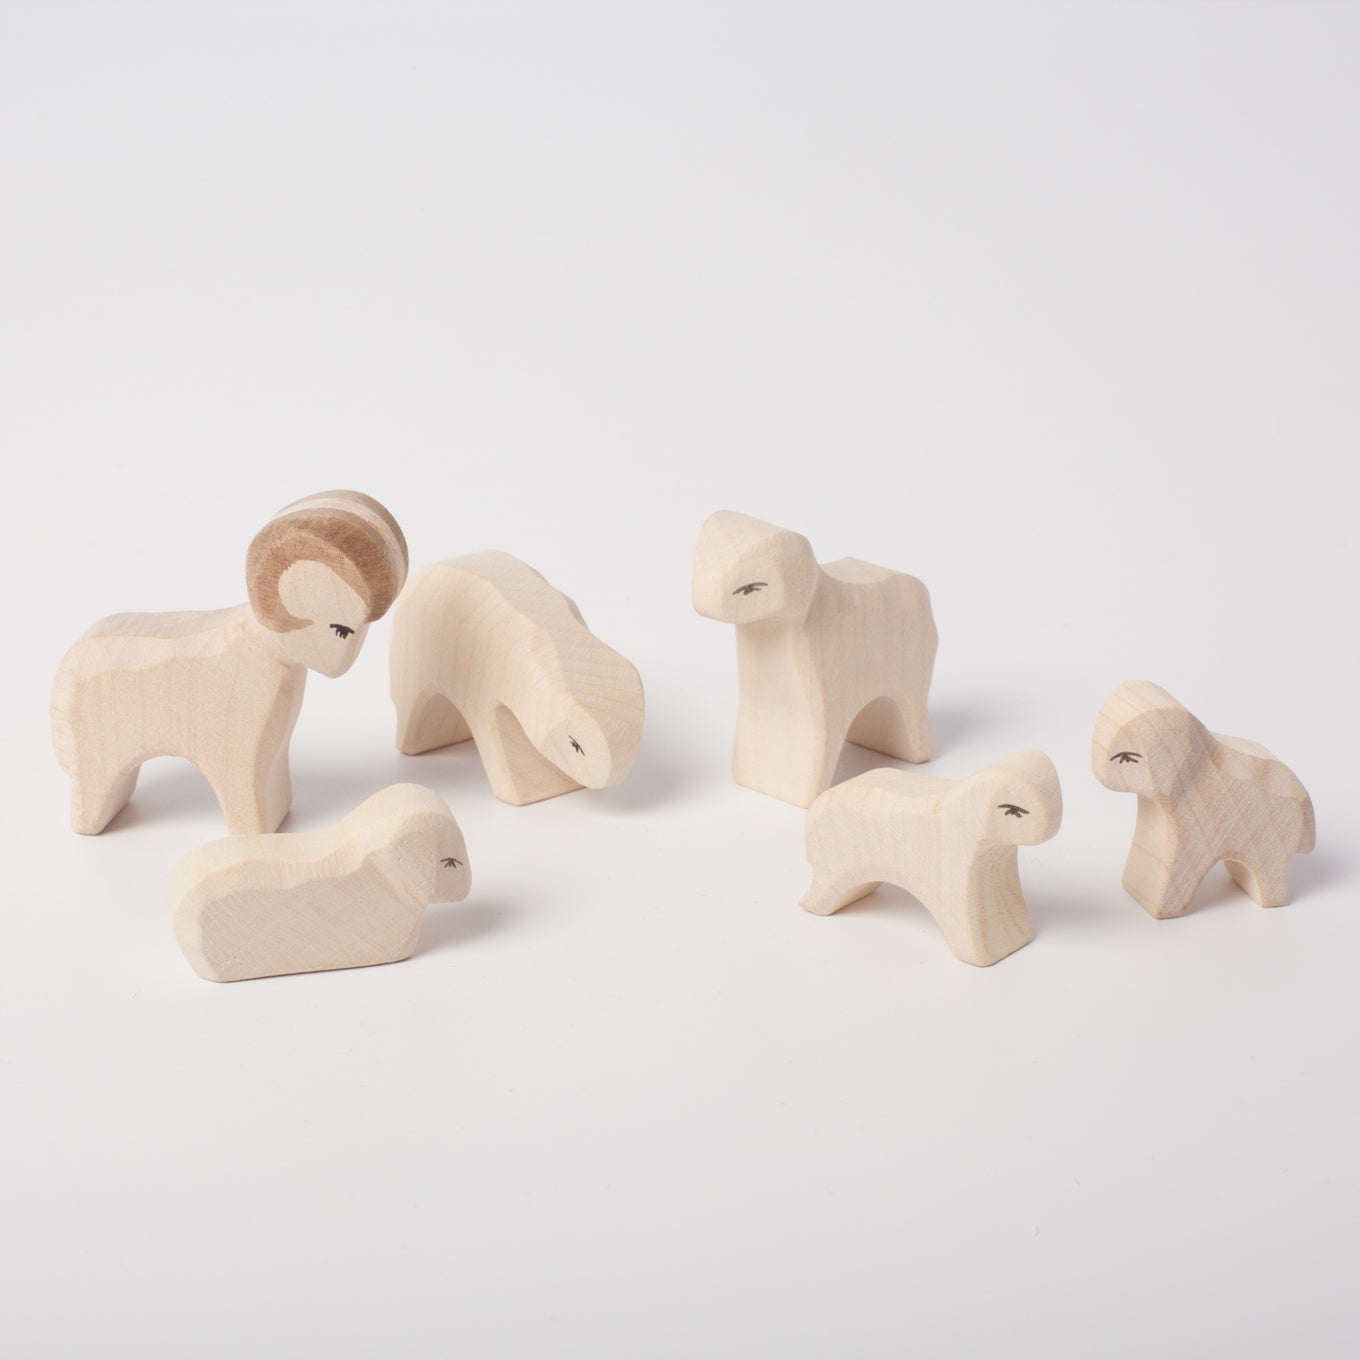 Sheep Mini Nativity Set | 6 Piece